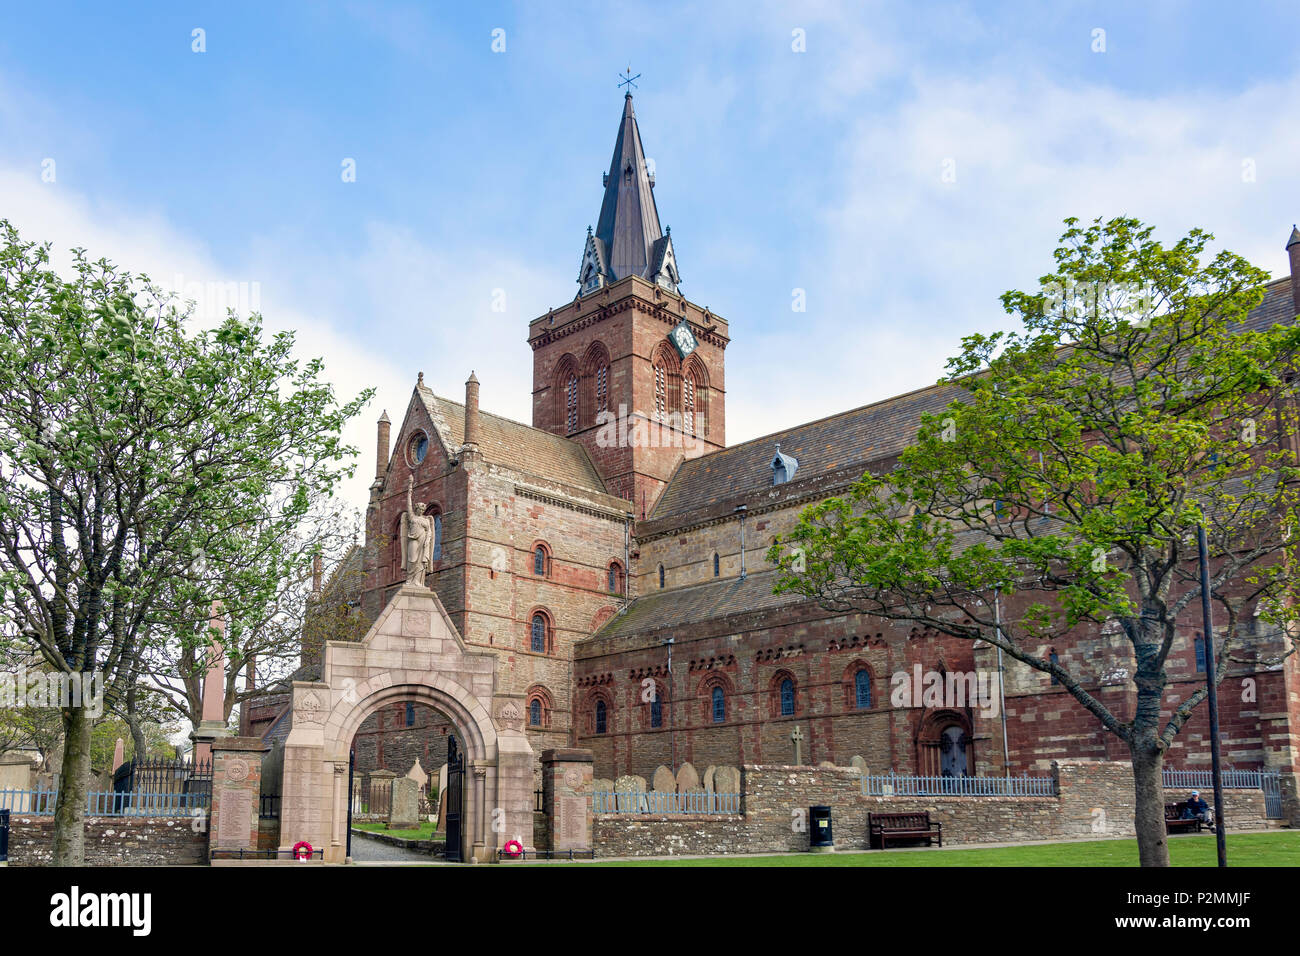 St Magnus Cathedral, Broad Street, Kirkwall, Mainland, Orkney Islands, Northern Isles, Scotland, United Kingdom - Stock Image